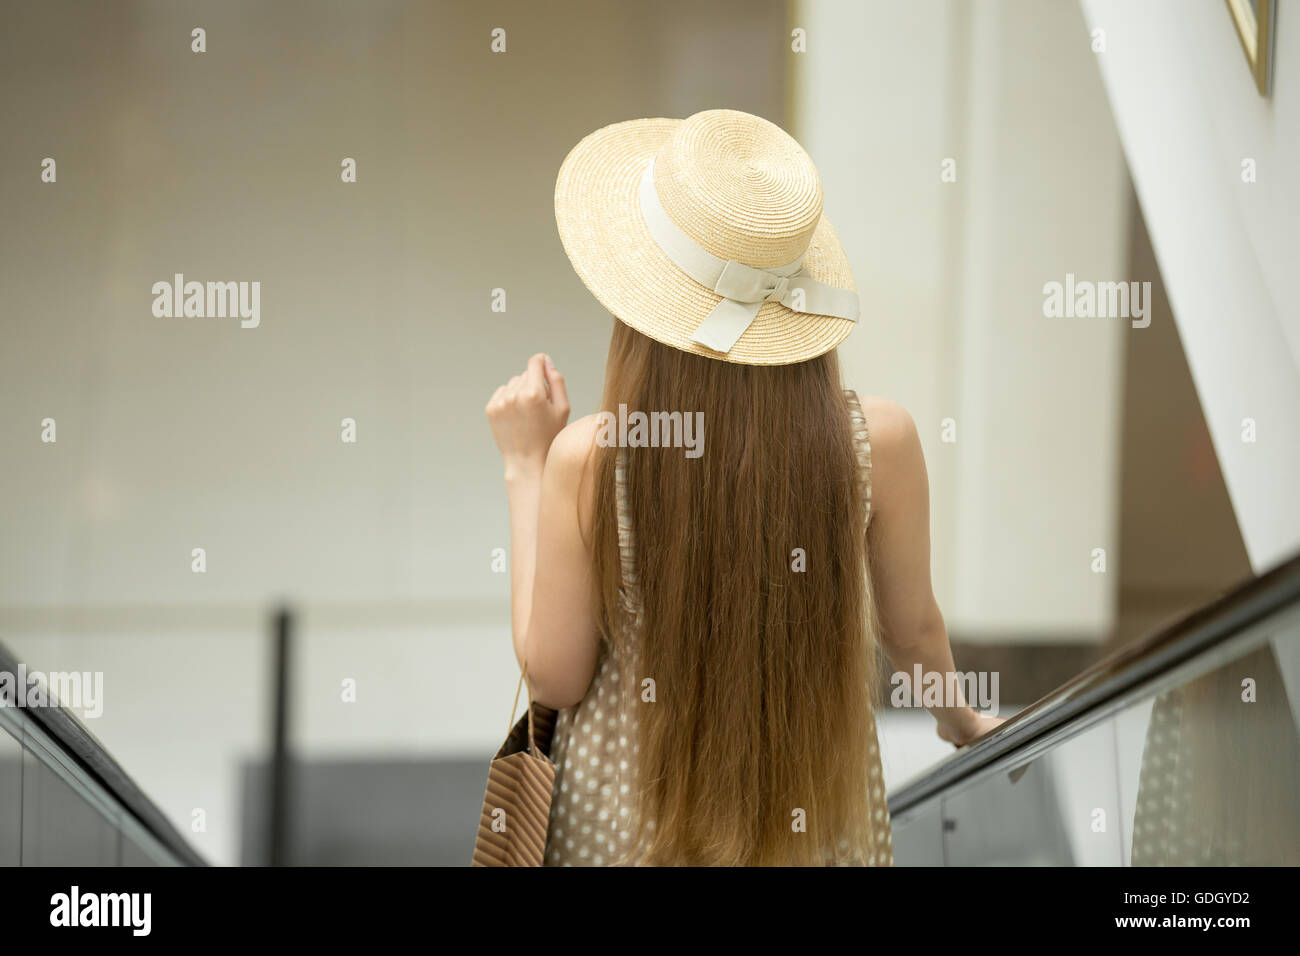 Young beautiful long-haired customer woman wearing a hat and cute polka dot summer dress carrying shopping paper - Stock Image